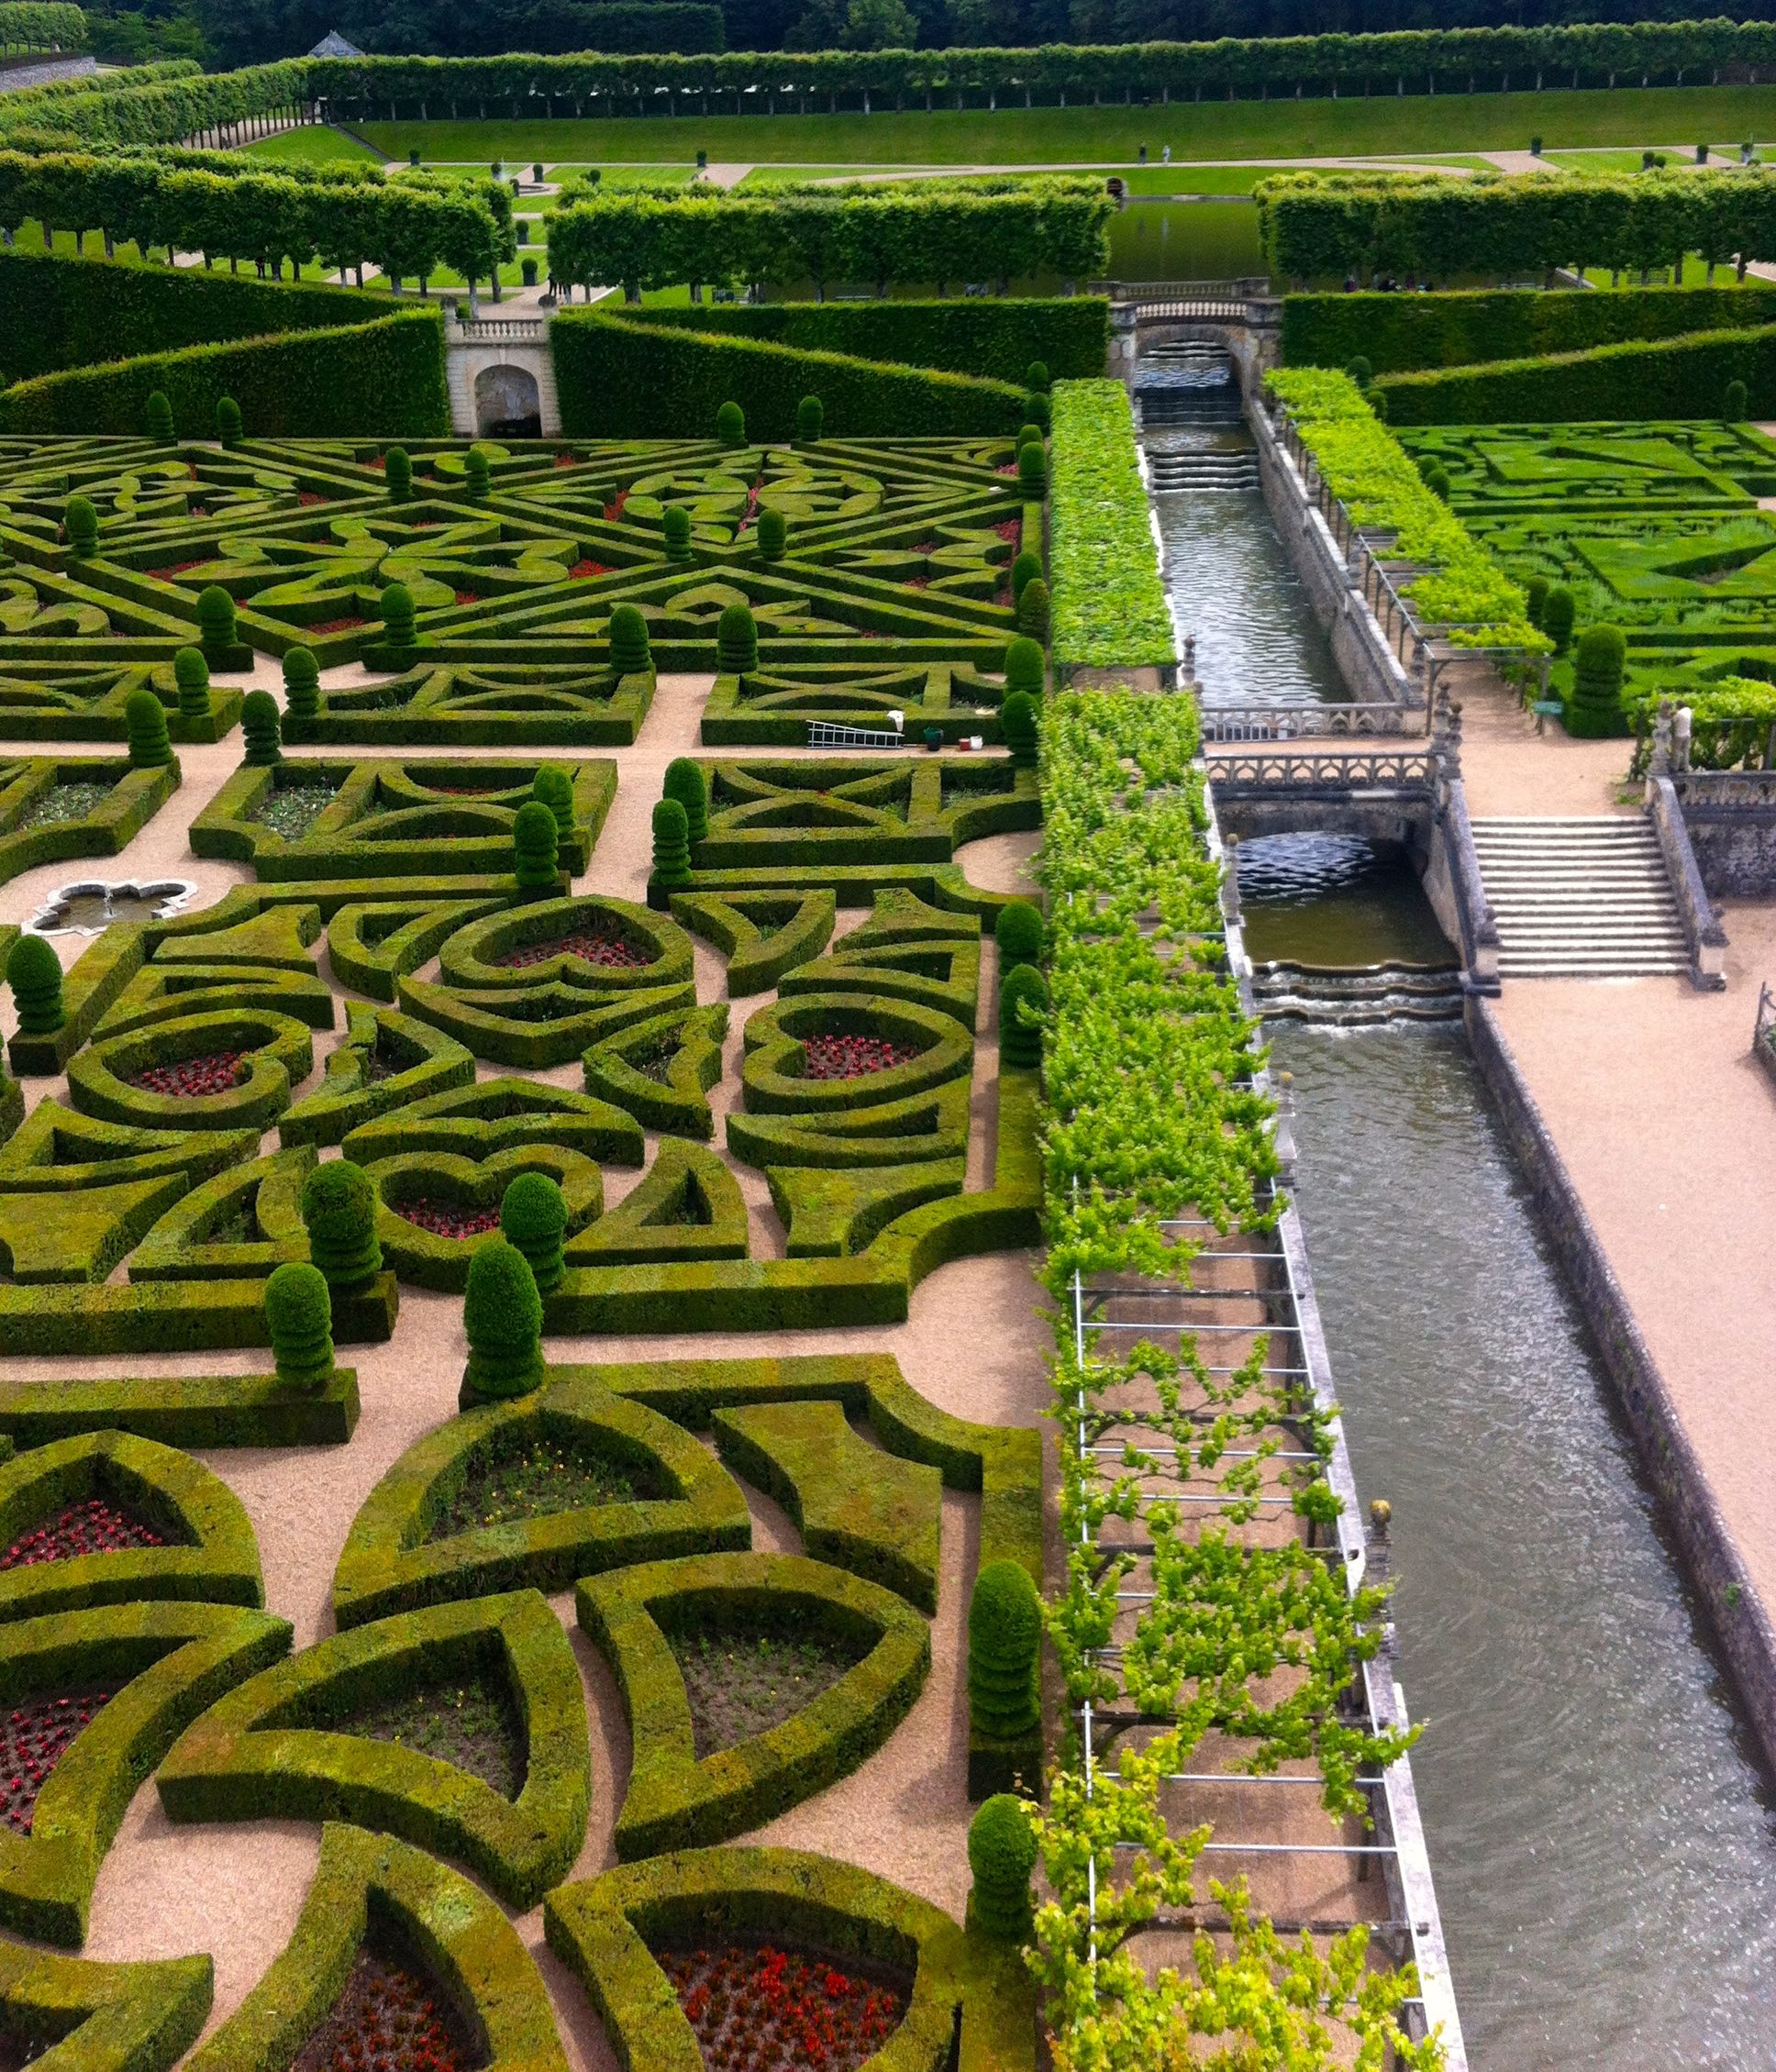 THE FAMOUS GARDENS AT VILLANDRY